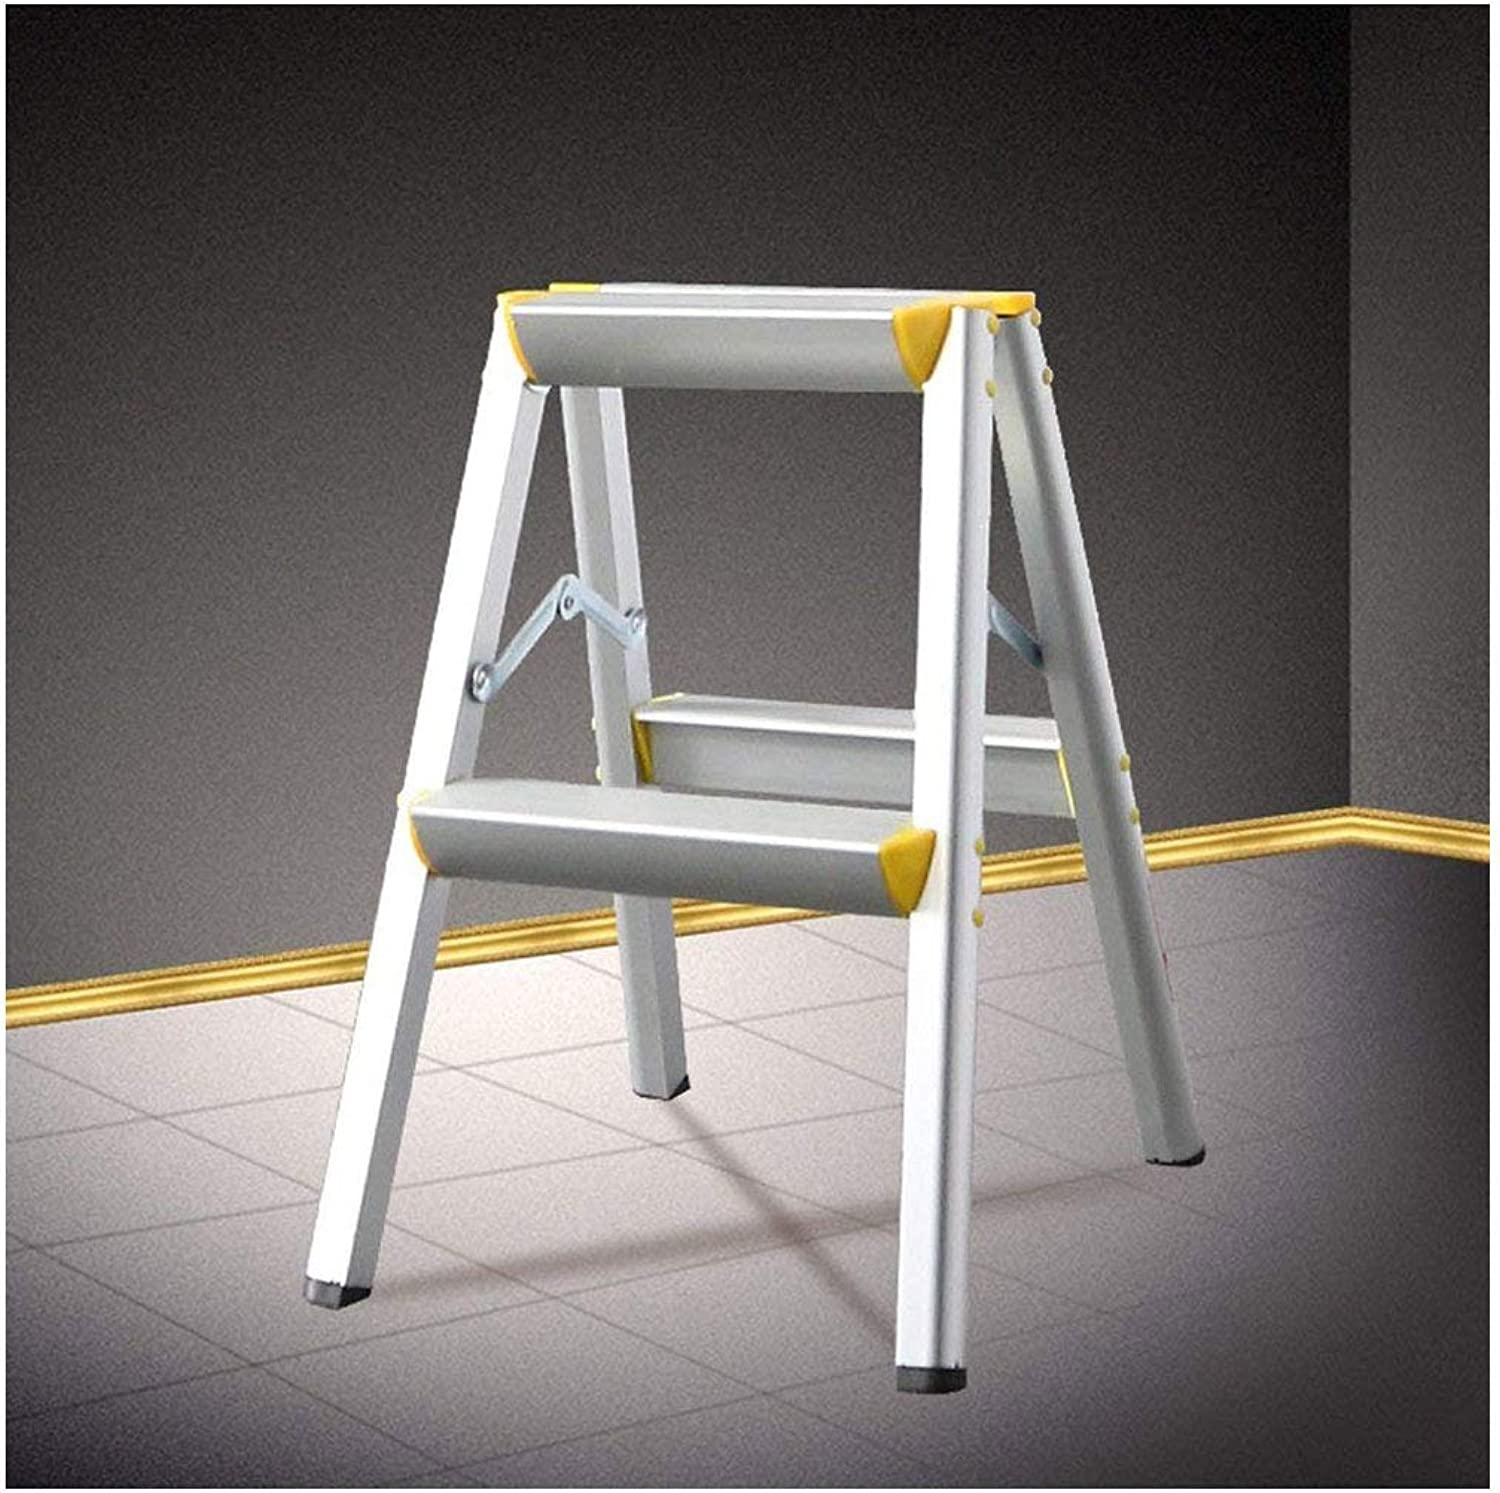 XMTEY Ladder Stool Two Three Four Five Steps Nonslip Folding Household Pavilion Pedals Herringbone Dual Use Indoor (Size   2 step)